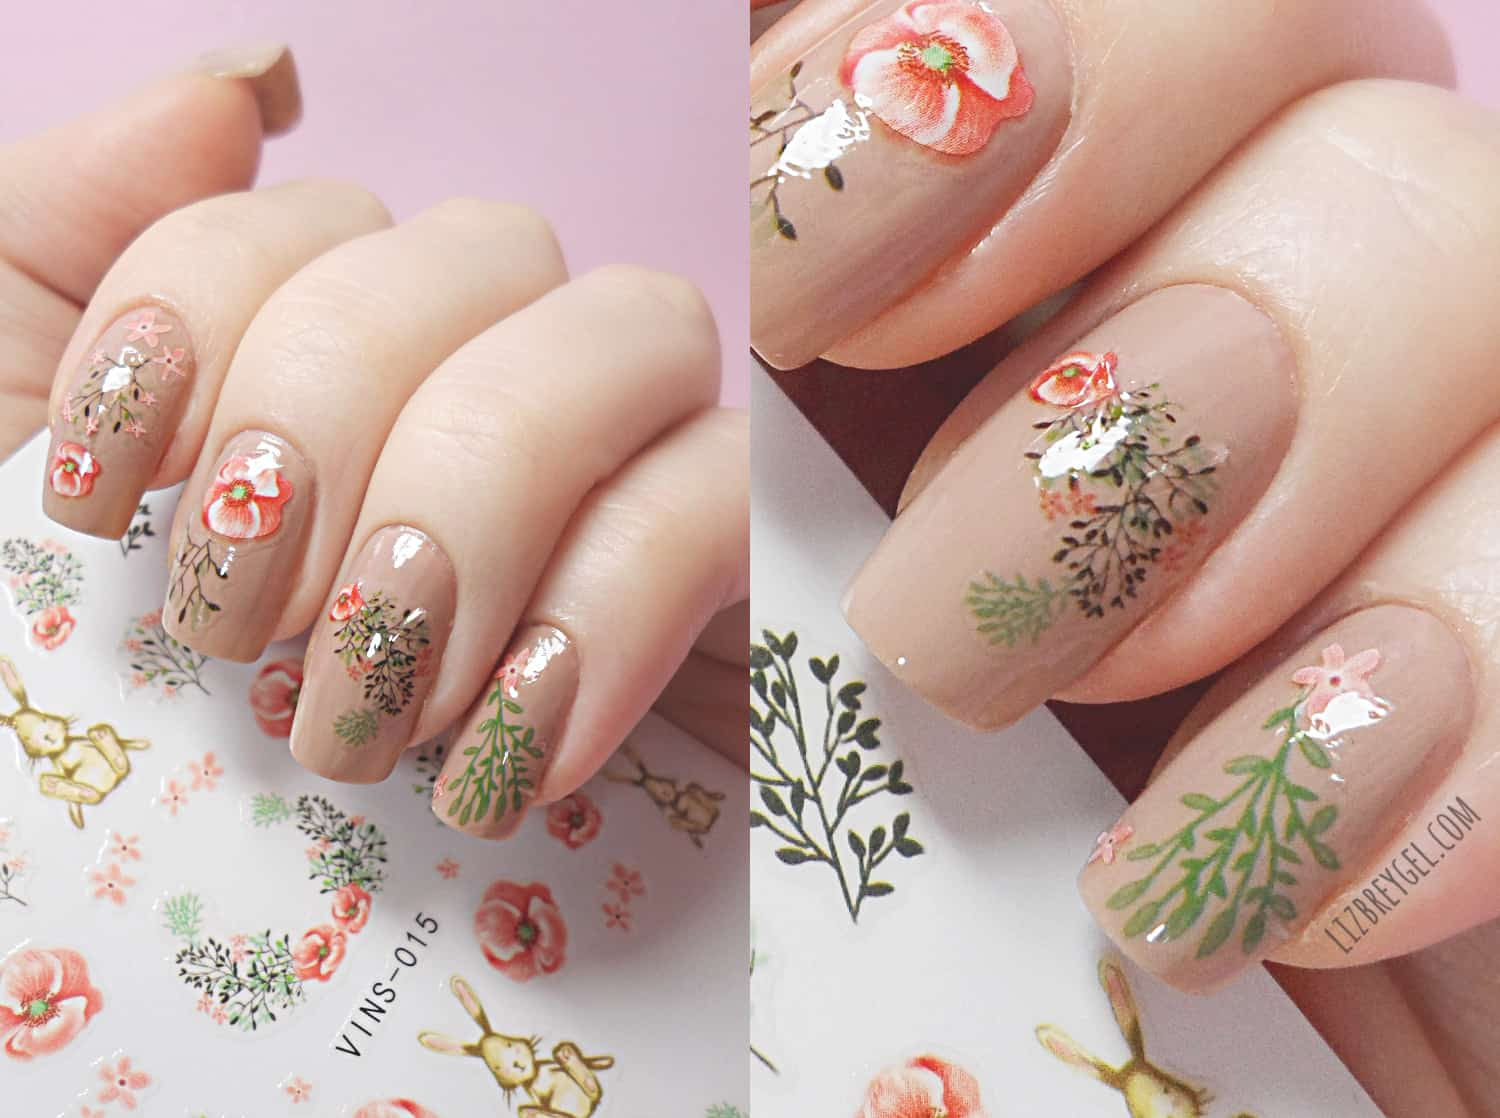 Stunning detailed floral manicure